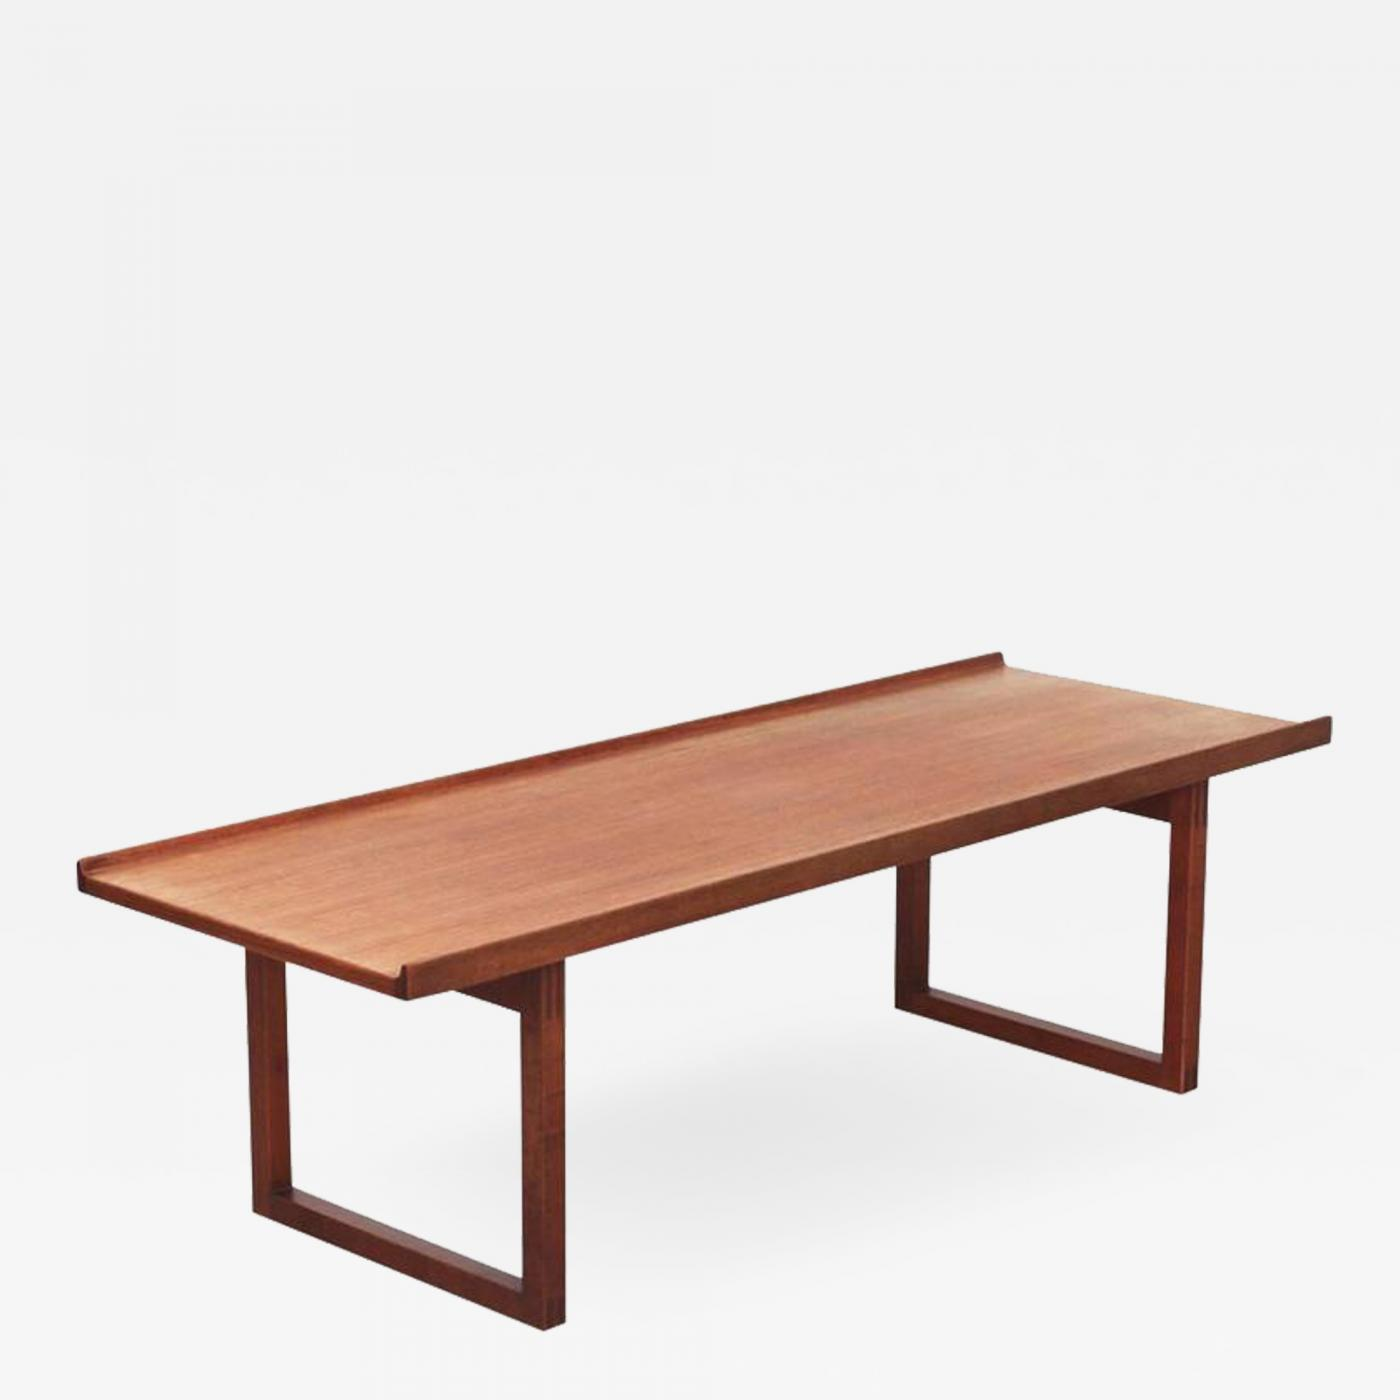 Möbel Carlsson J O Carlsson Jo Carlsson Coffee Table Or Bench In Teak By Vetlanda Sweden